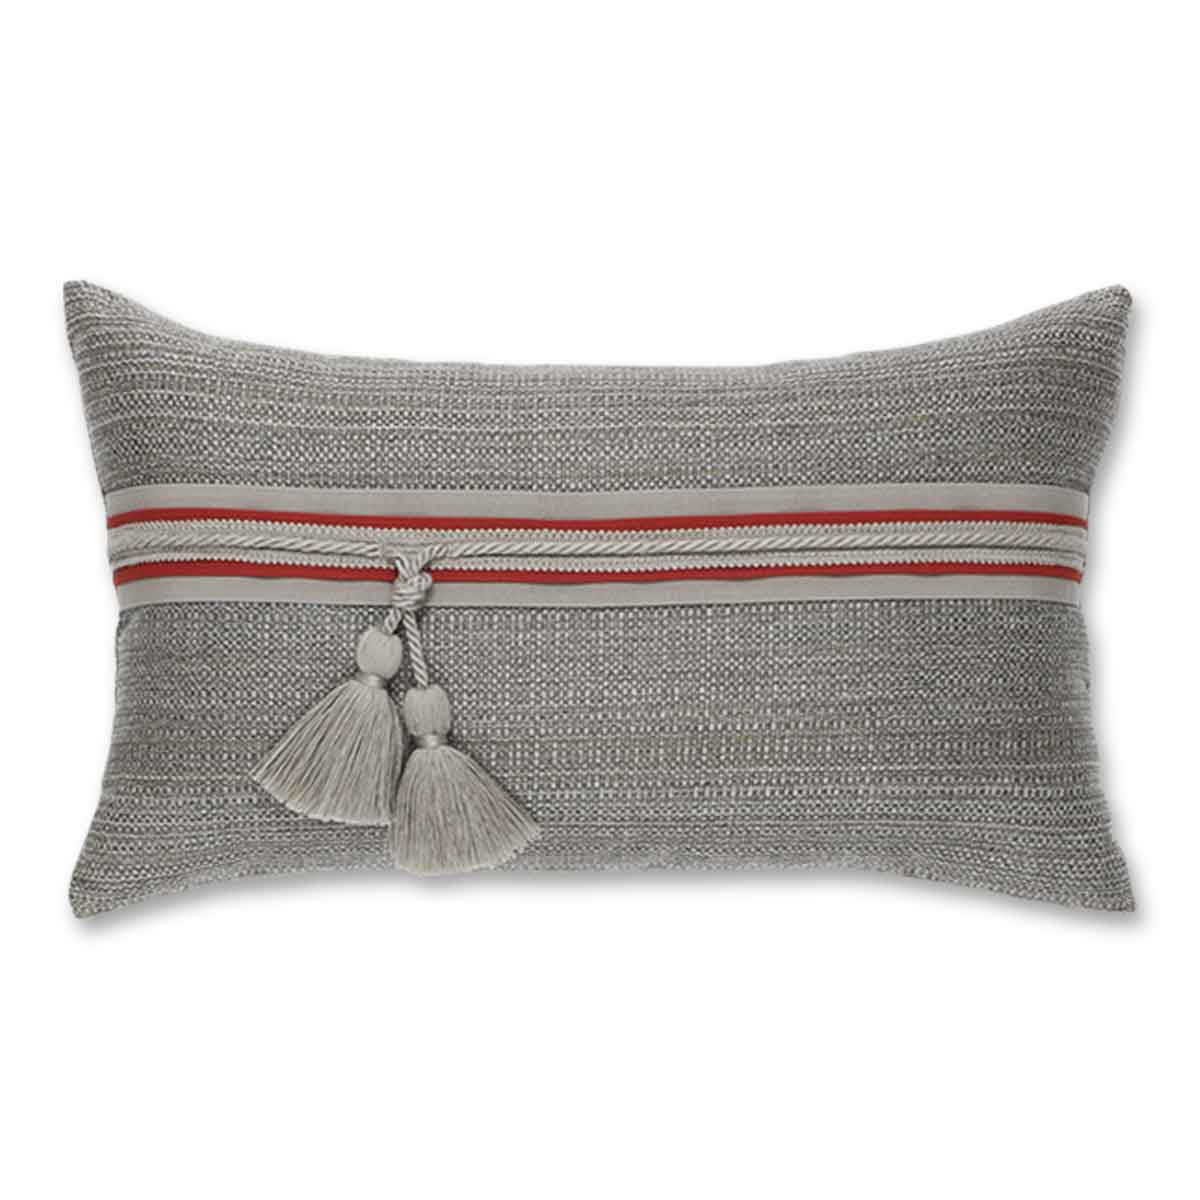 textured-smoke-lumbar pillow by Elaine Smith